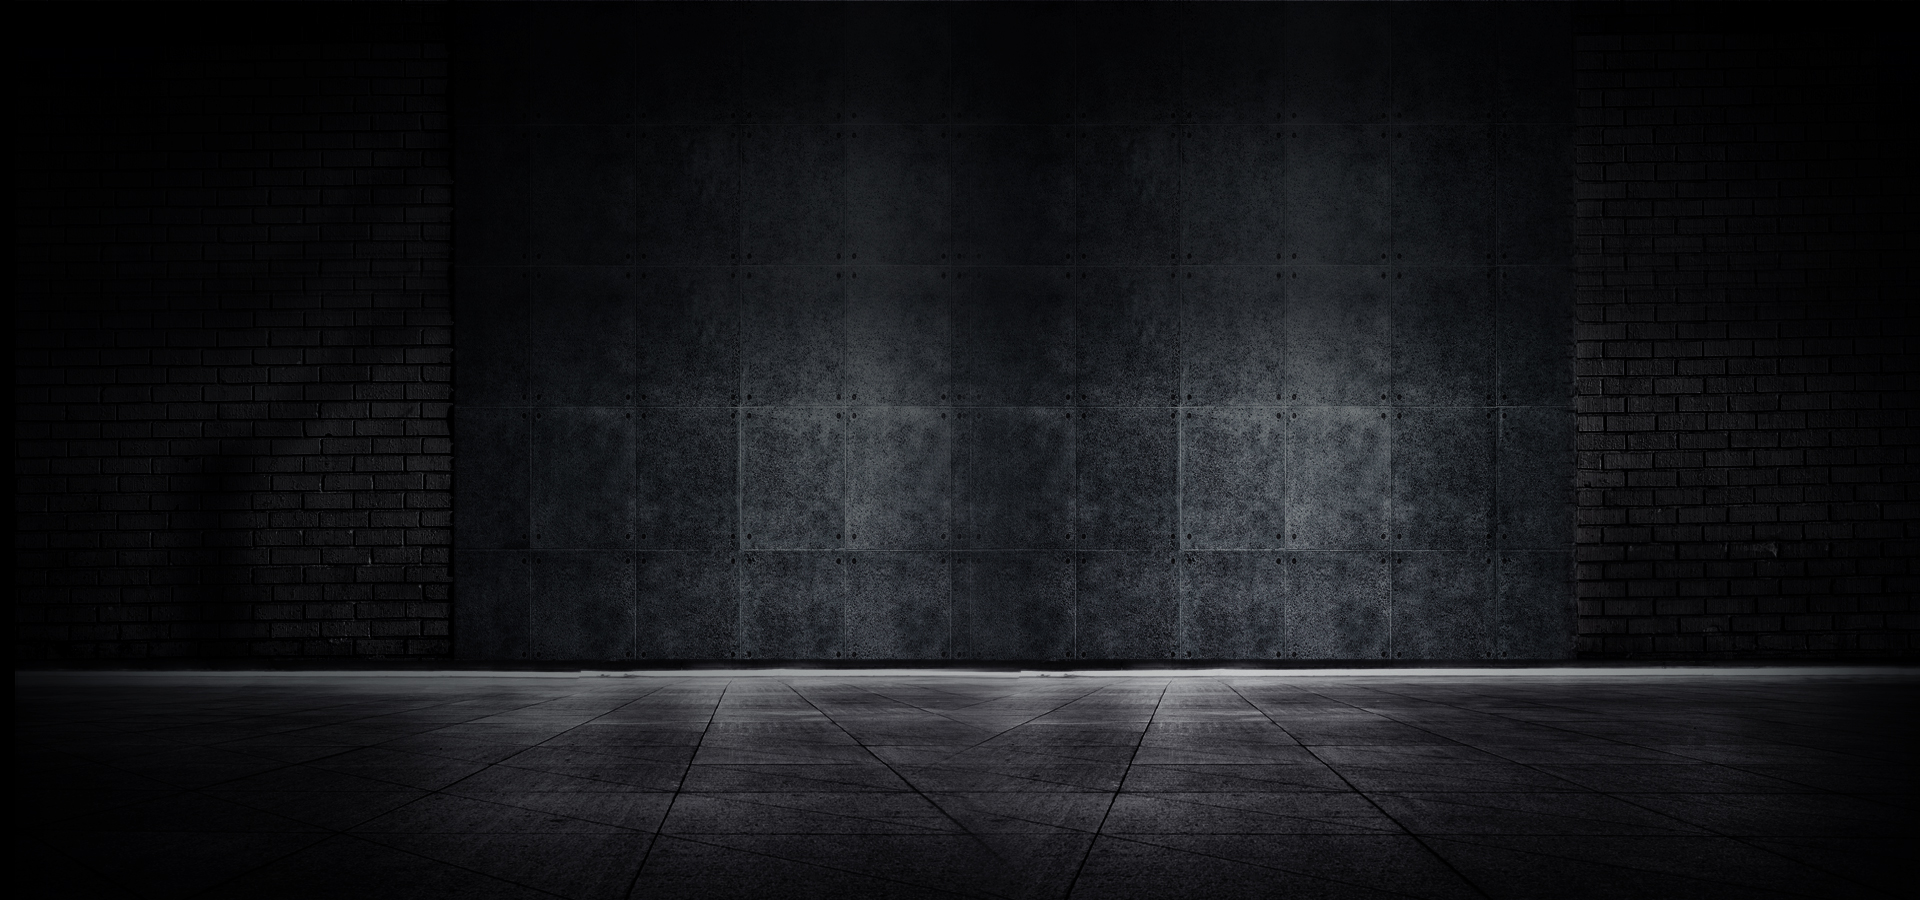 dark wall background material image